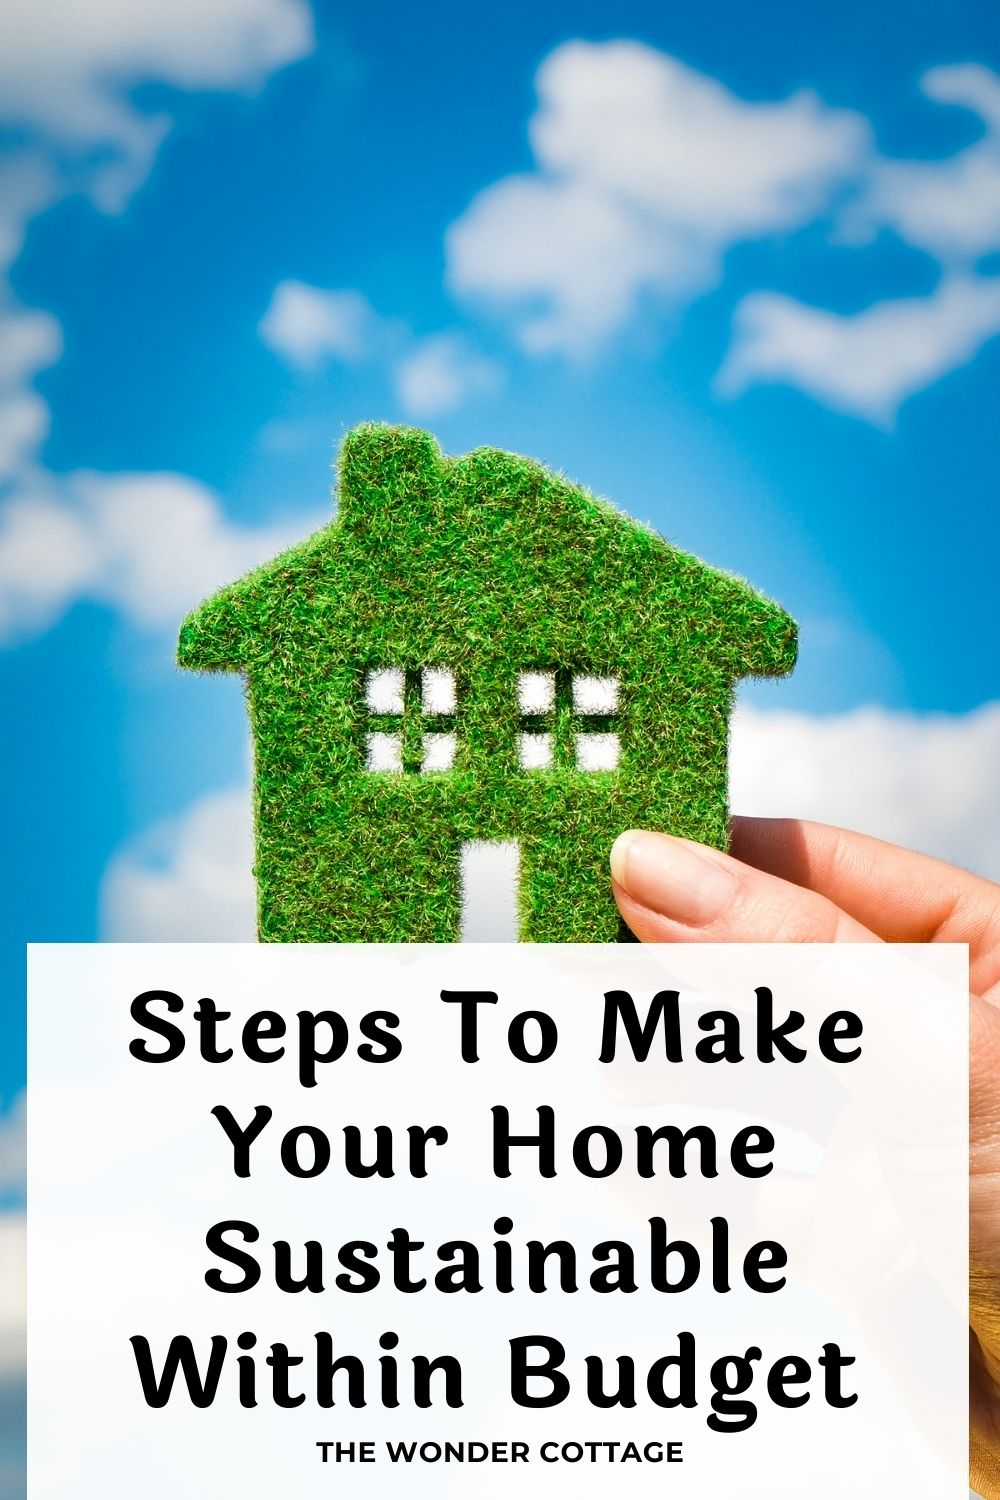 steps to make your home sustainable within budget